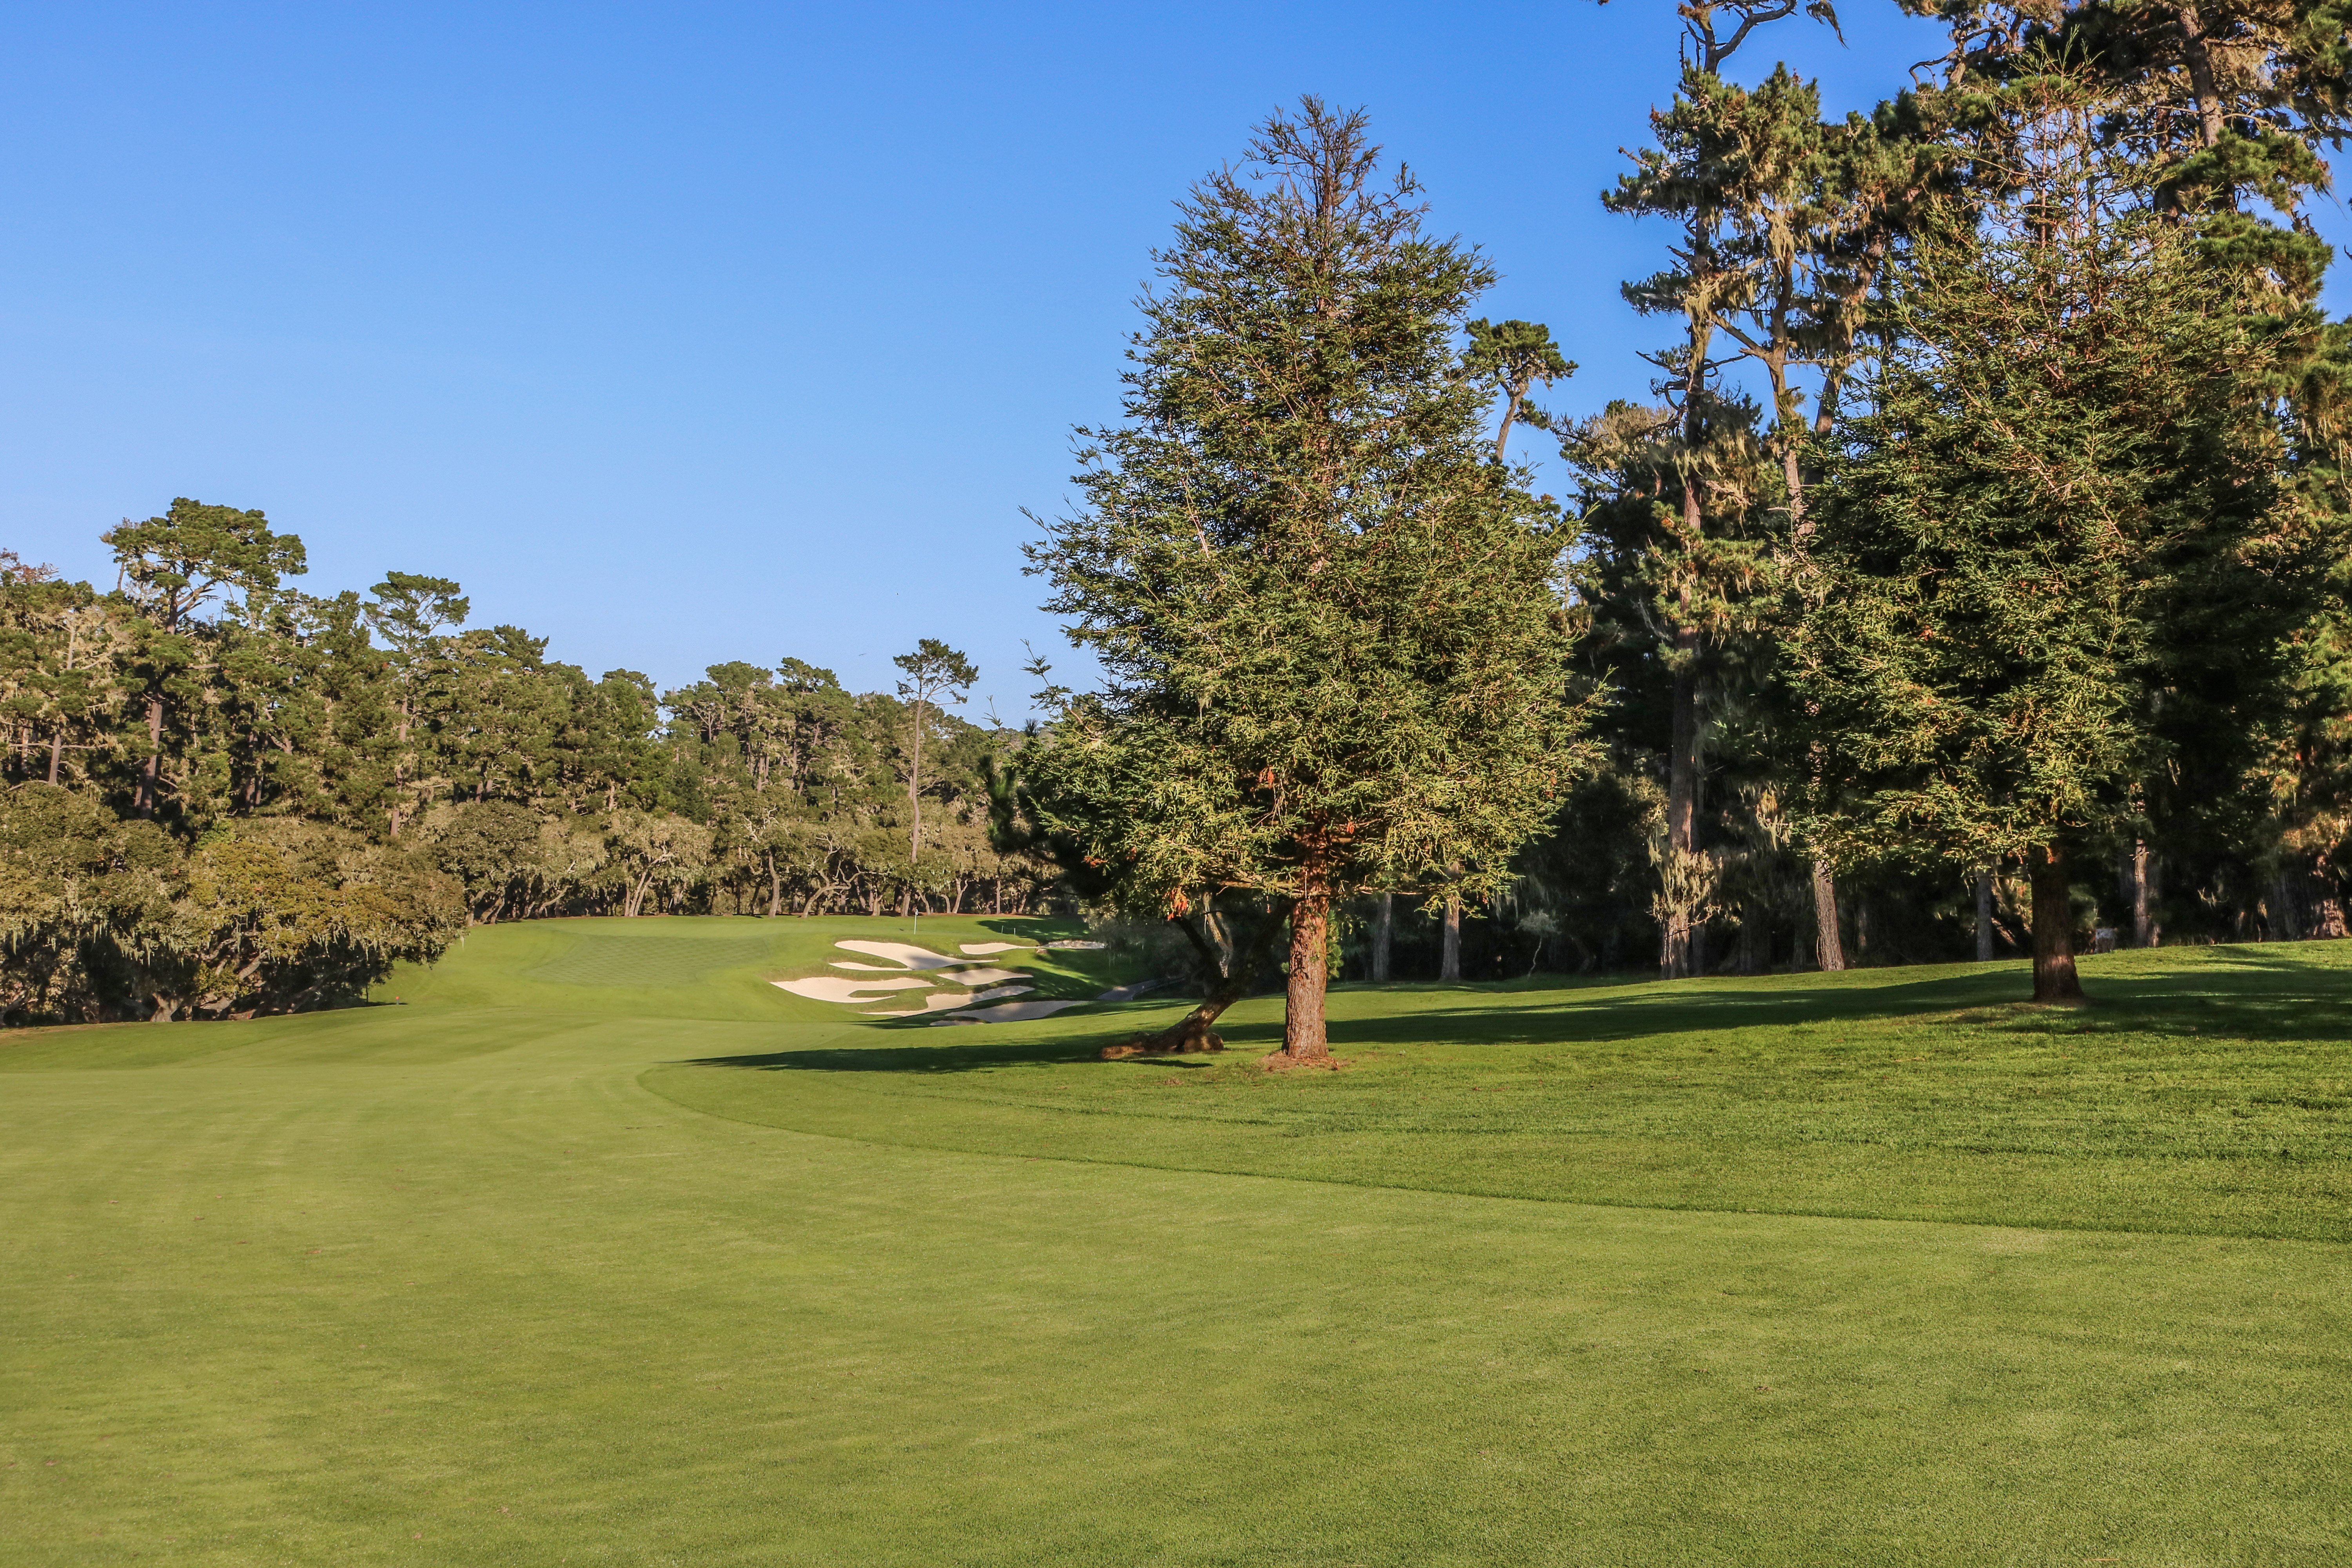 11th hole at Spyglass Hill